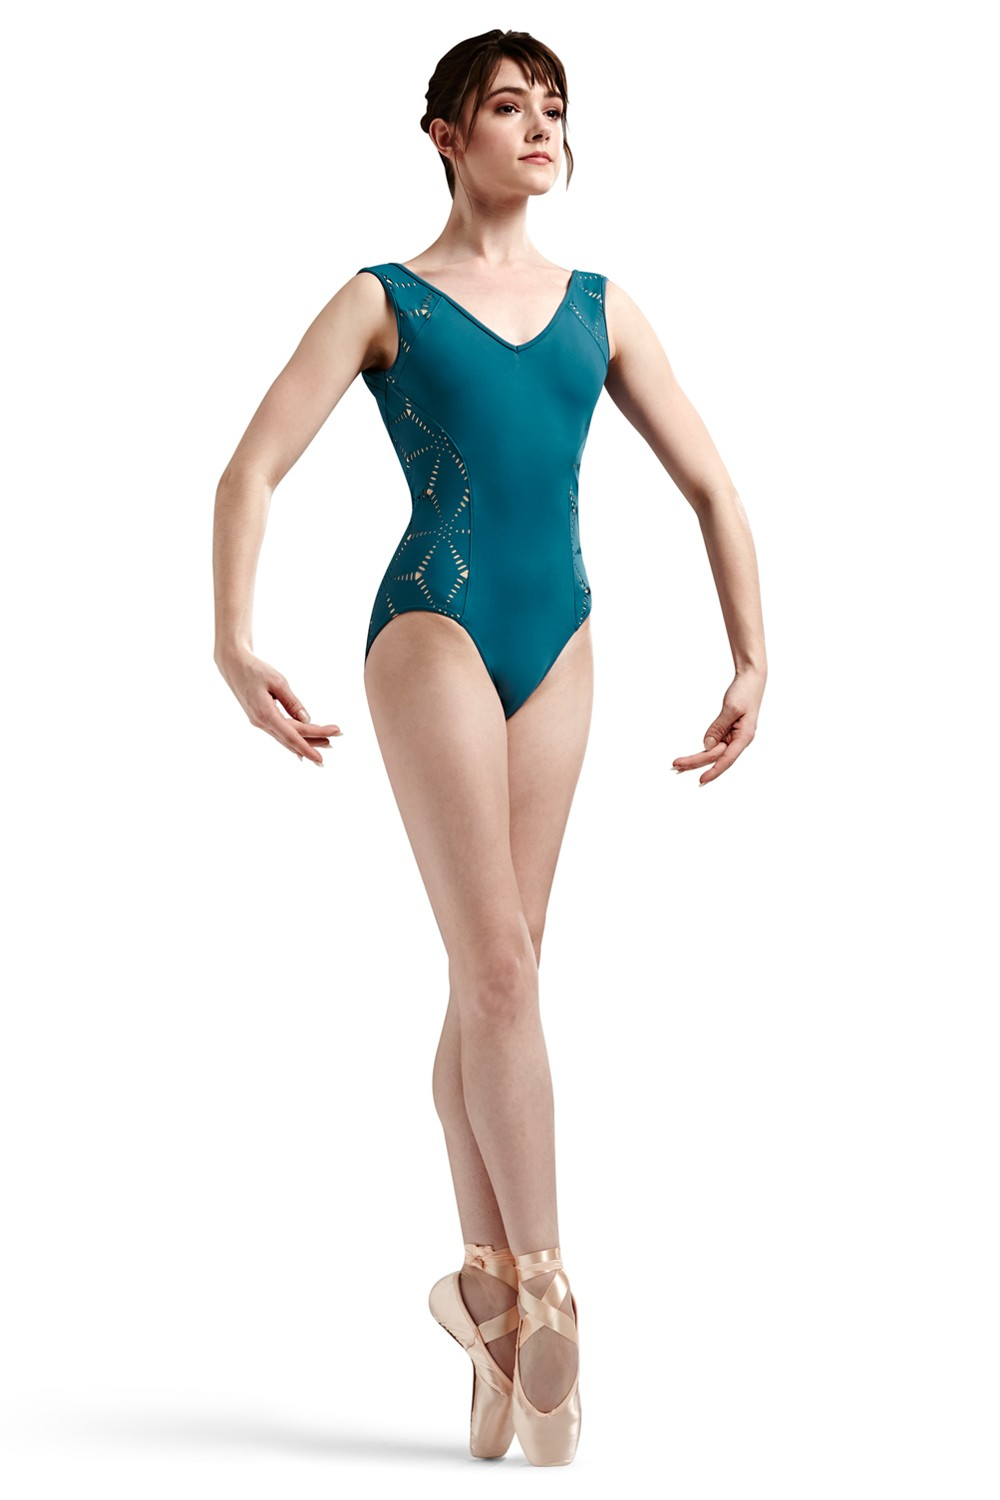 Jfm Origami Laser Cutout Side And Shoulder Panel T Women's Dance Leotards